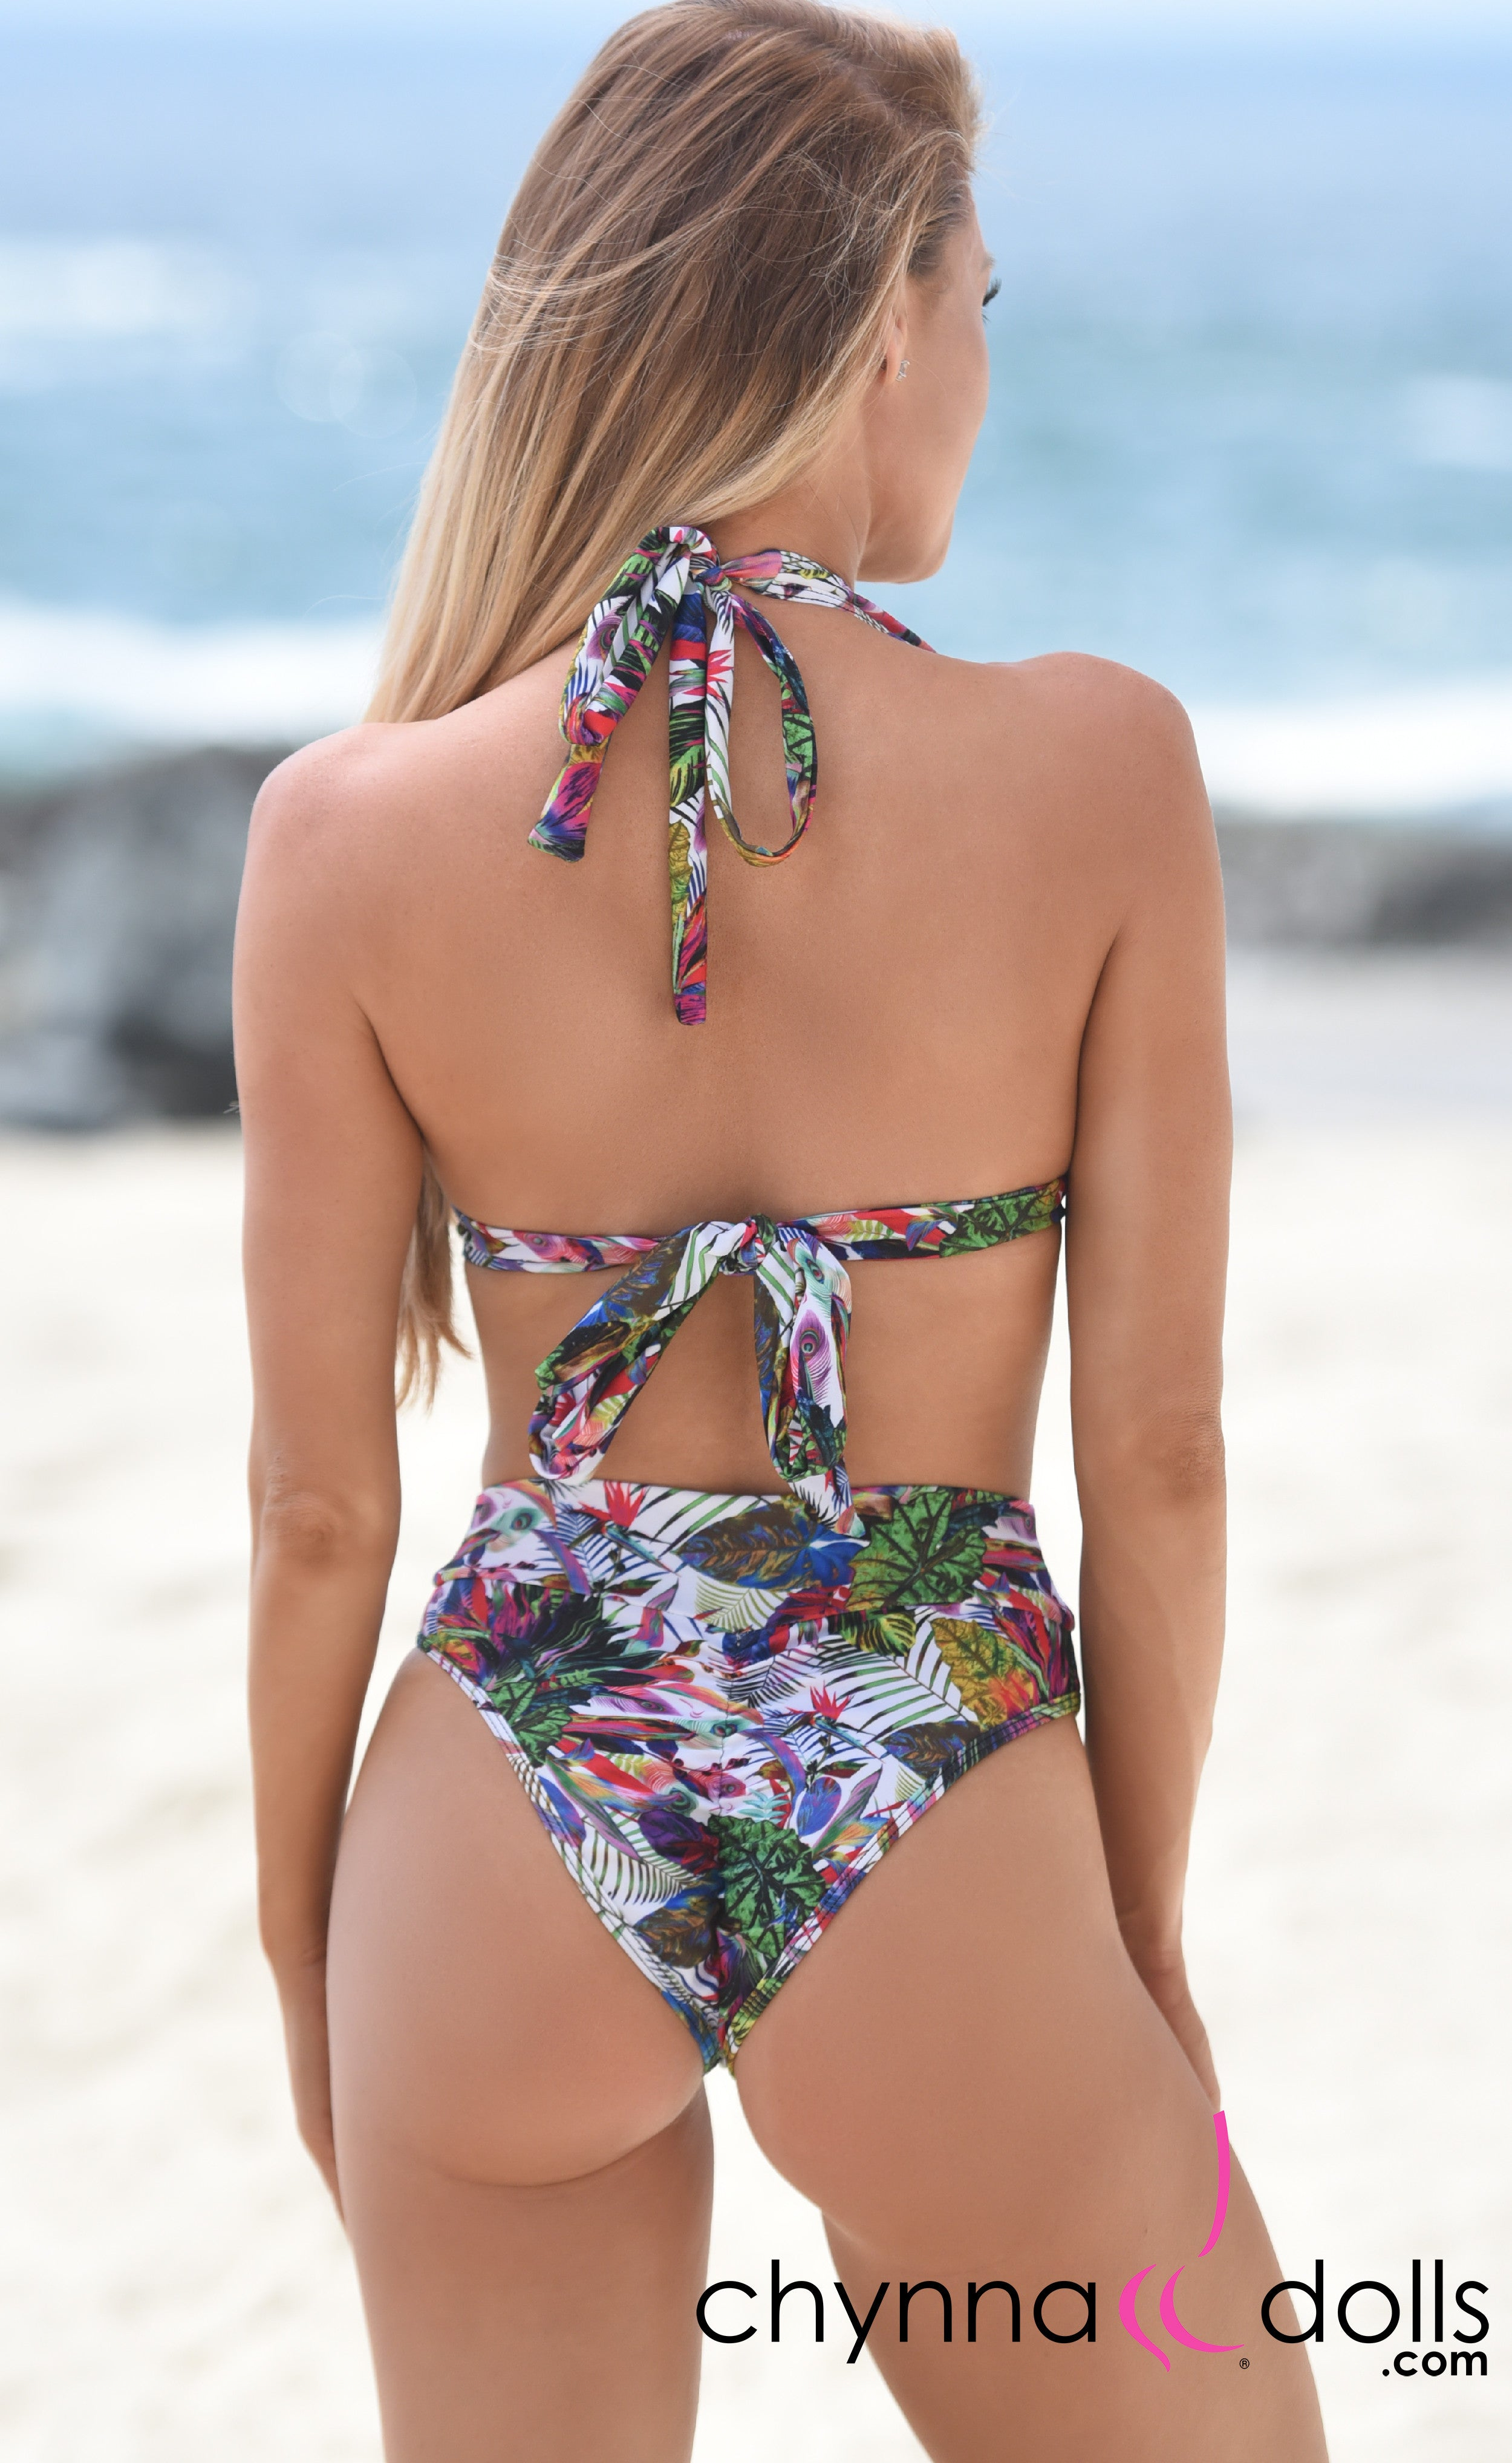 Soho: High Waisted Bottom w/ 2 Top Option in Chynna Dolls Exclusive Tropical Print